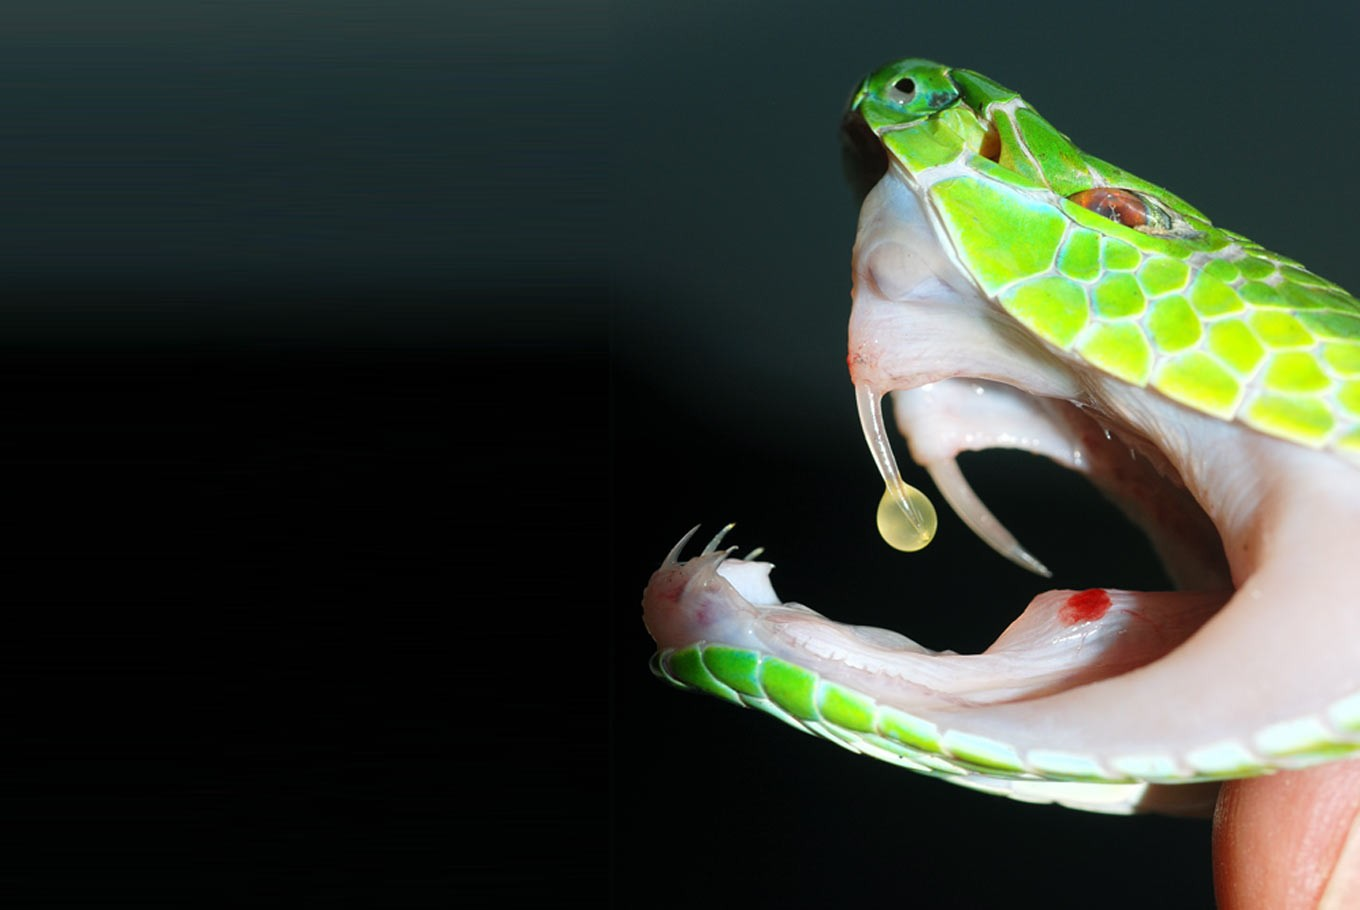 Snakebite: A 'neglected tropical disease'